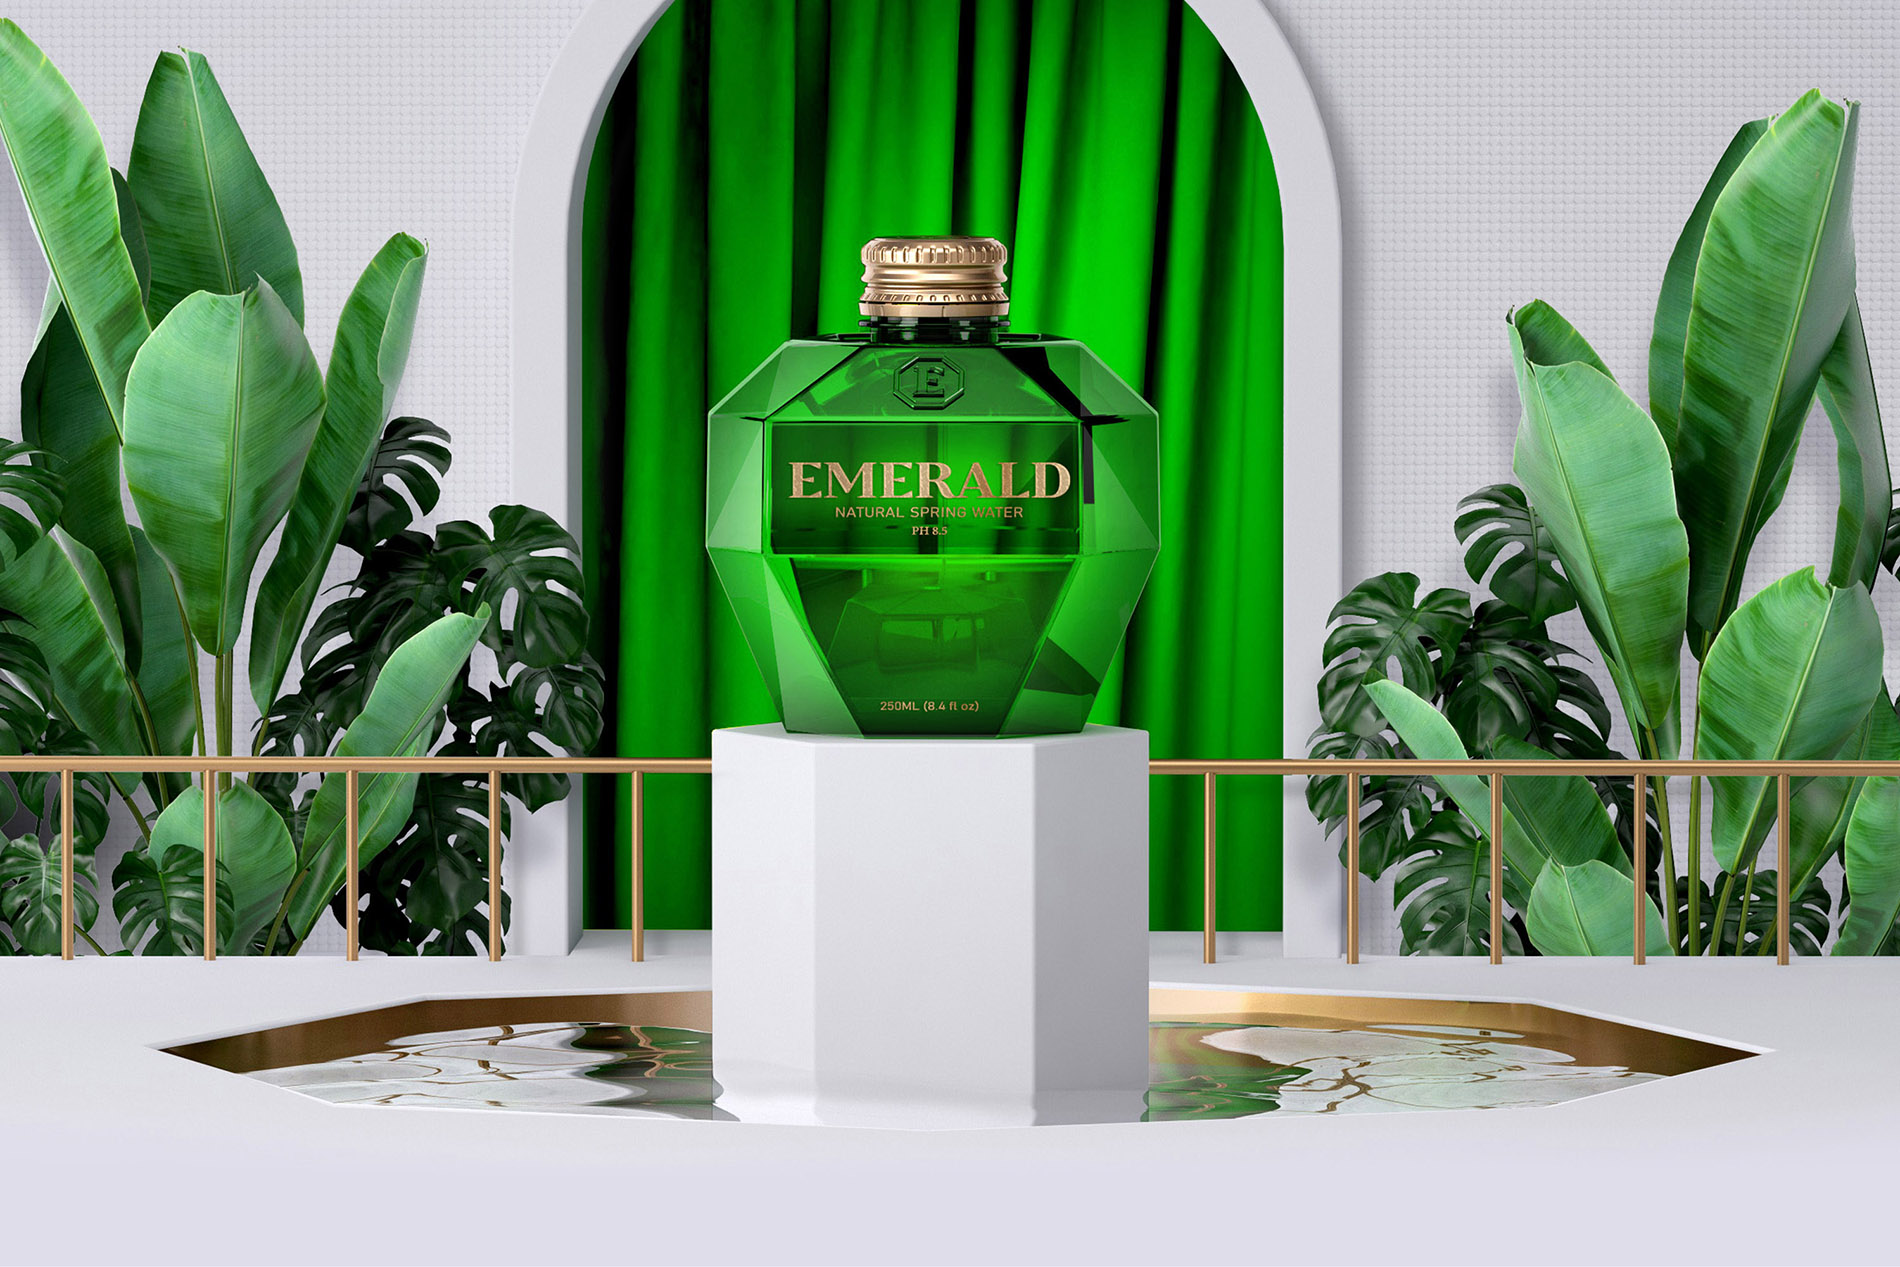 Emerald  Packaging Concept for Spring Water